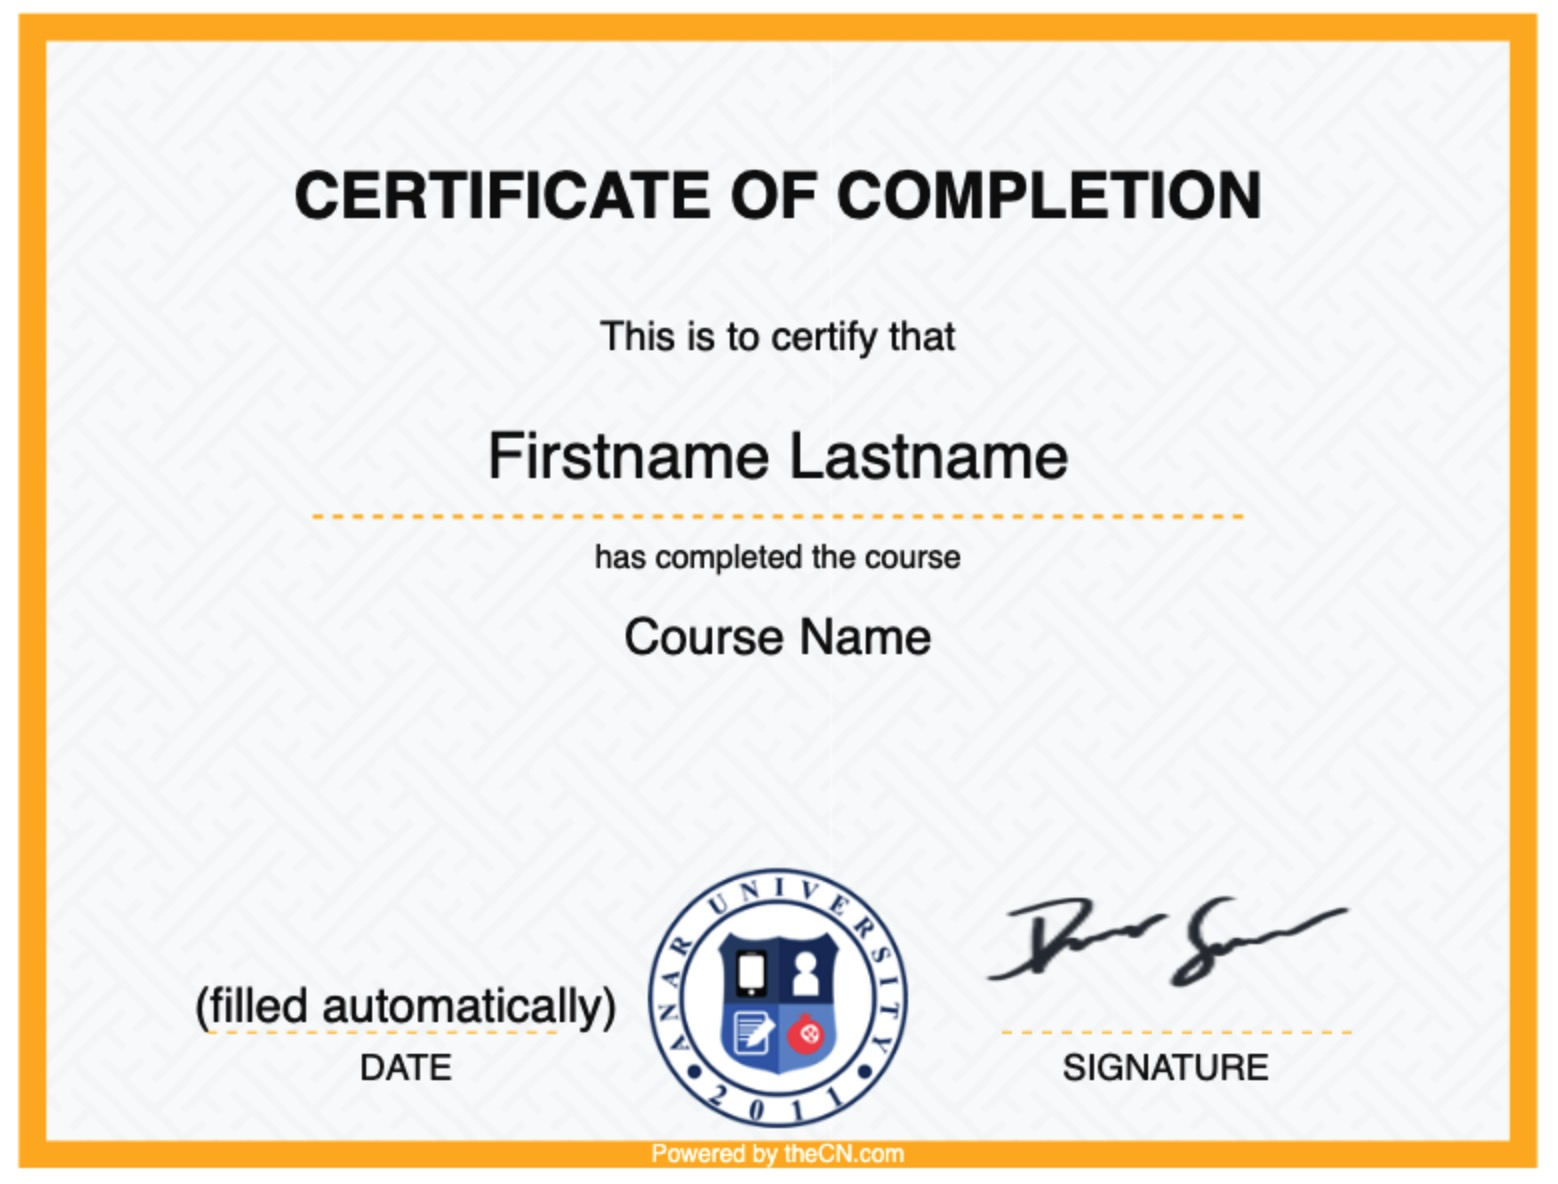 customized_certificate.jpg